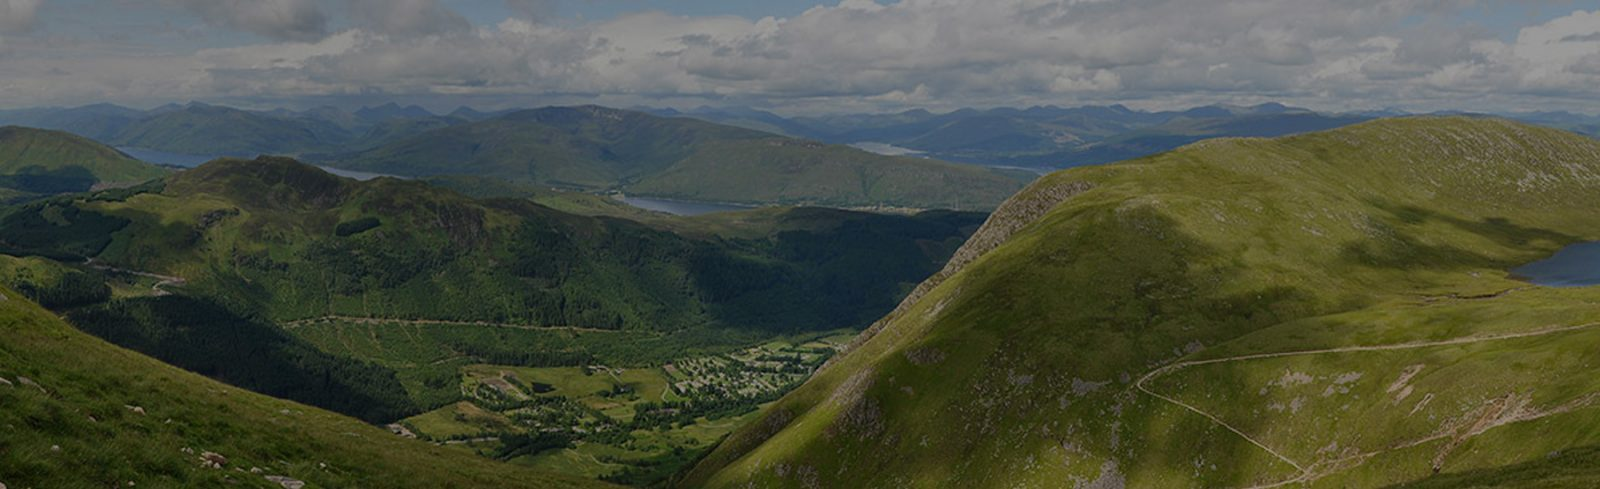 Aerial Direct complete the 3 Peaks Challenge for charity